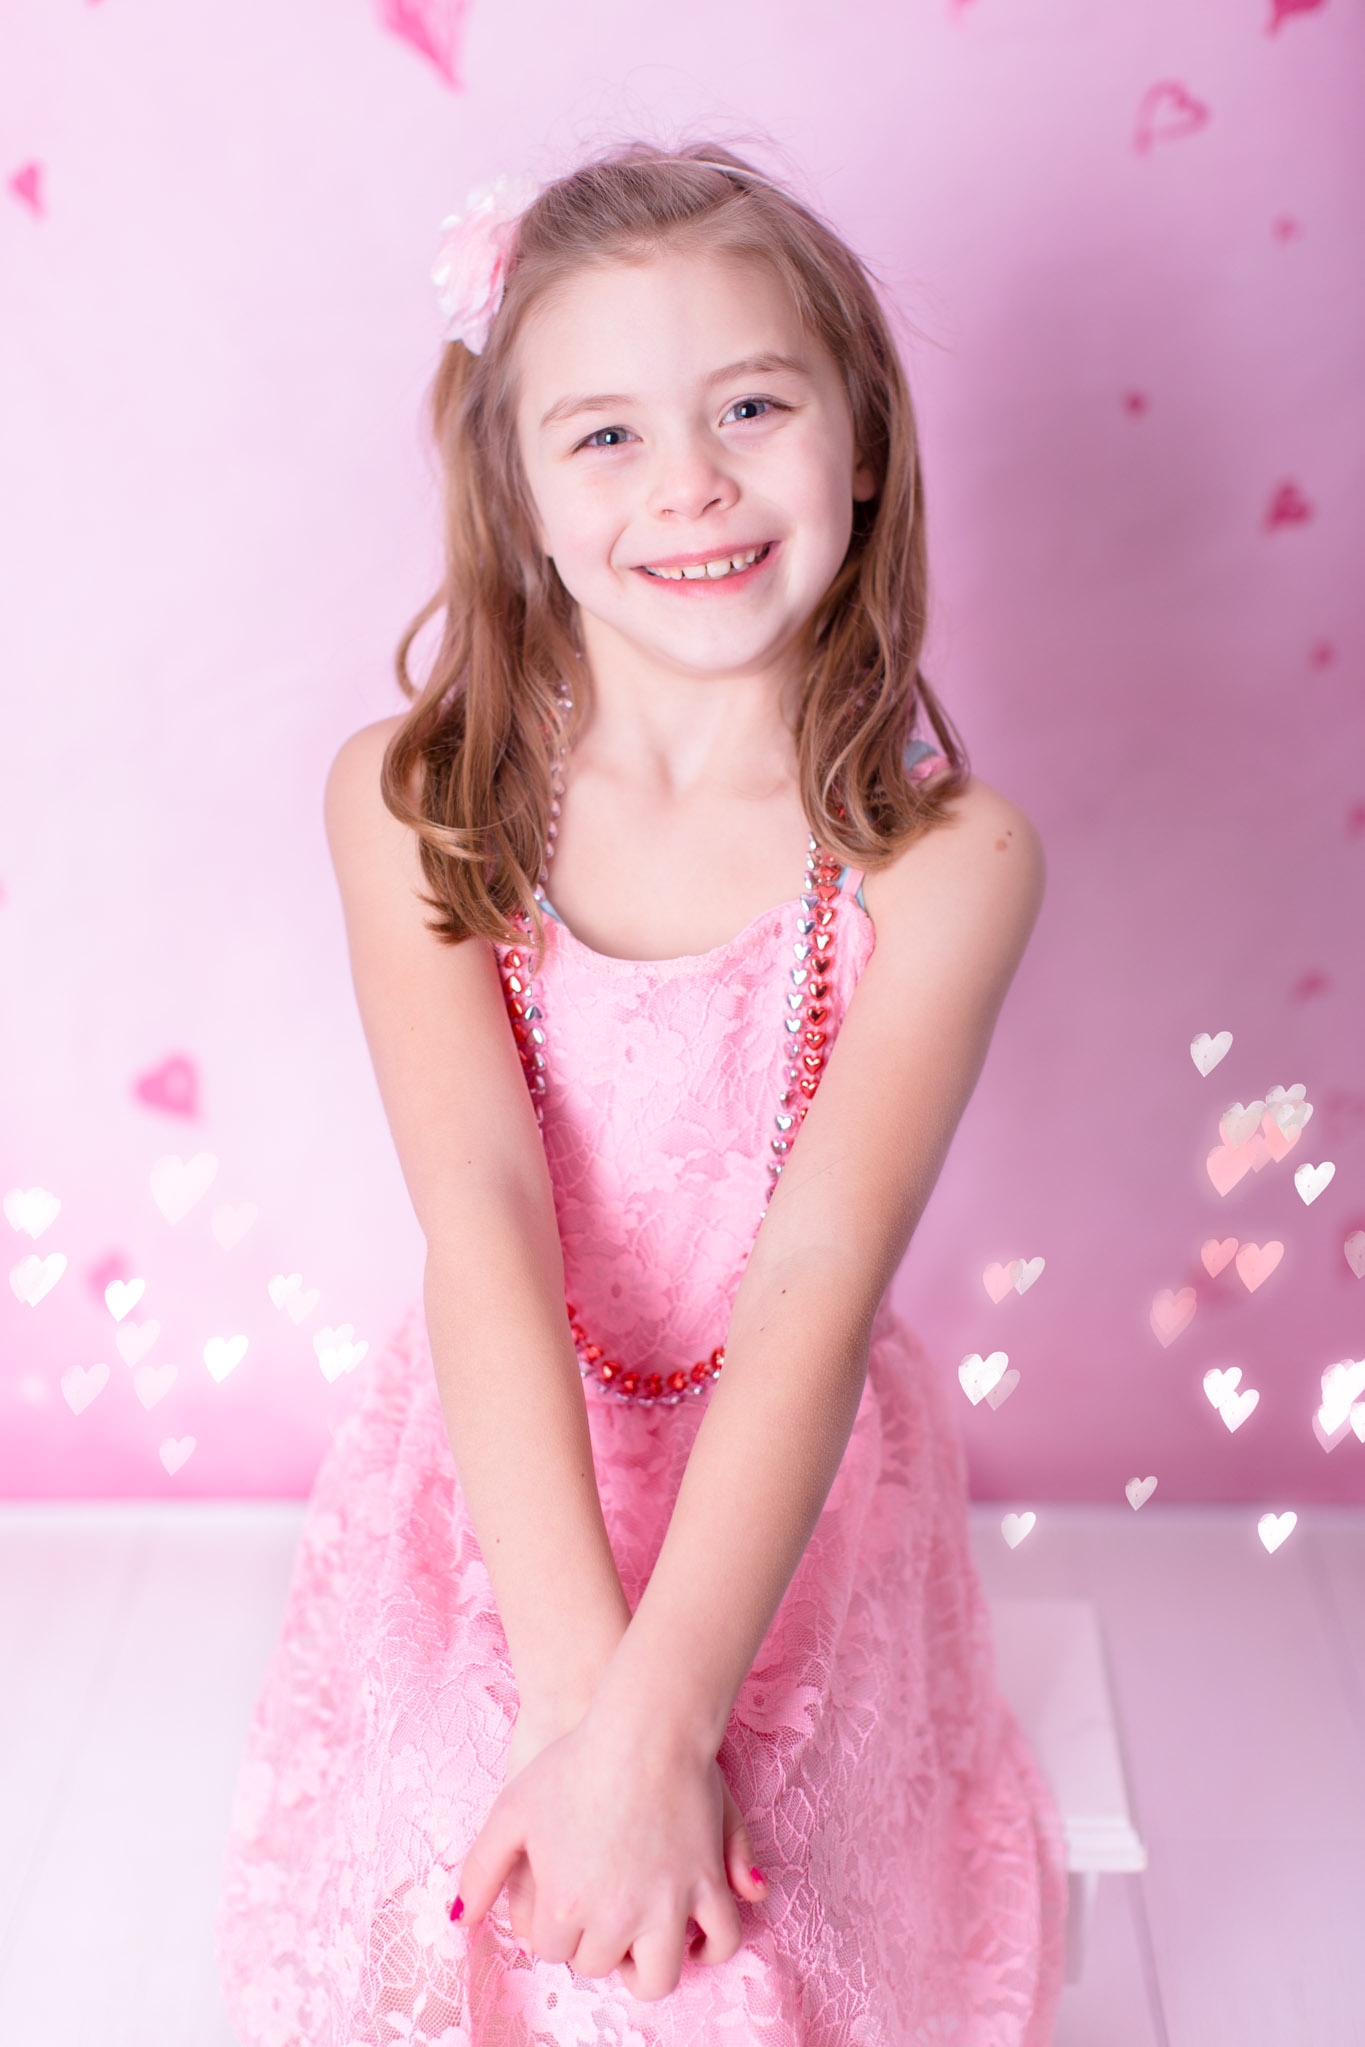 Image of the girl smiling and posing for valentine's day sessions